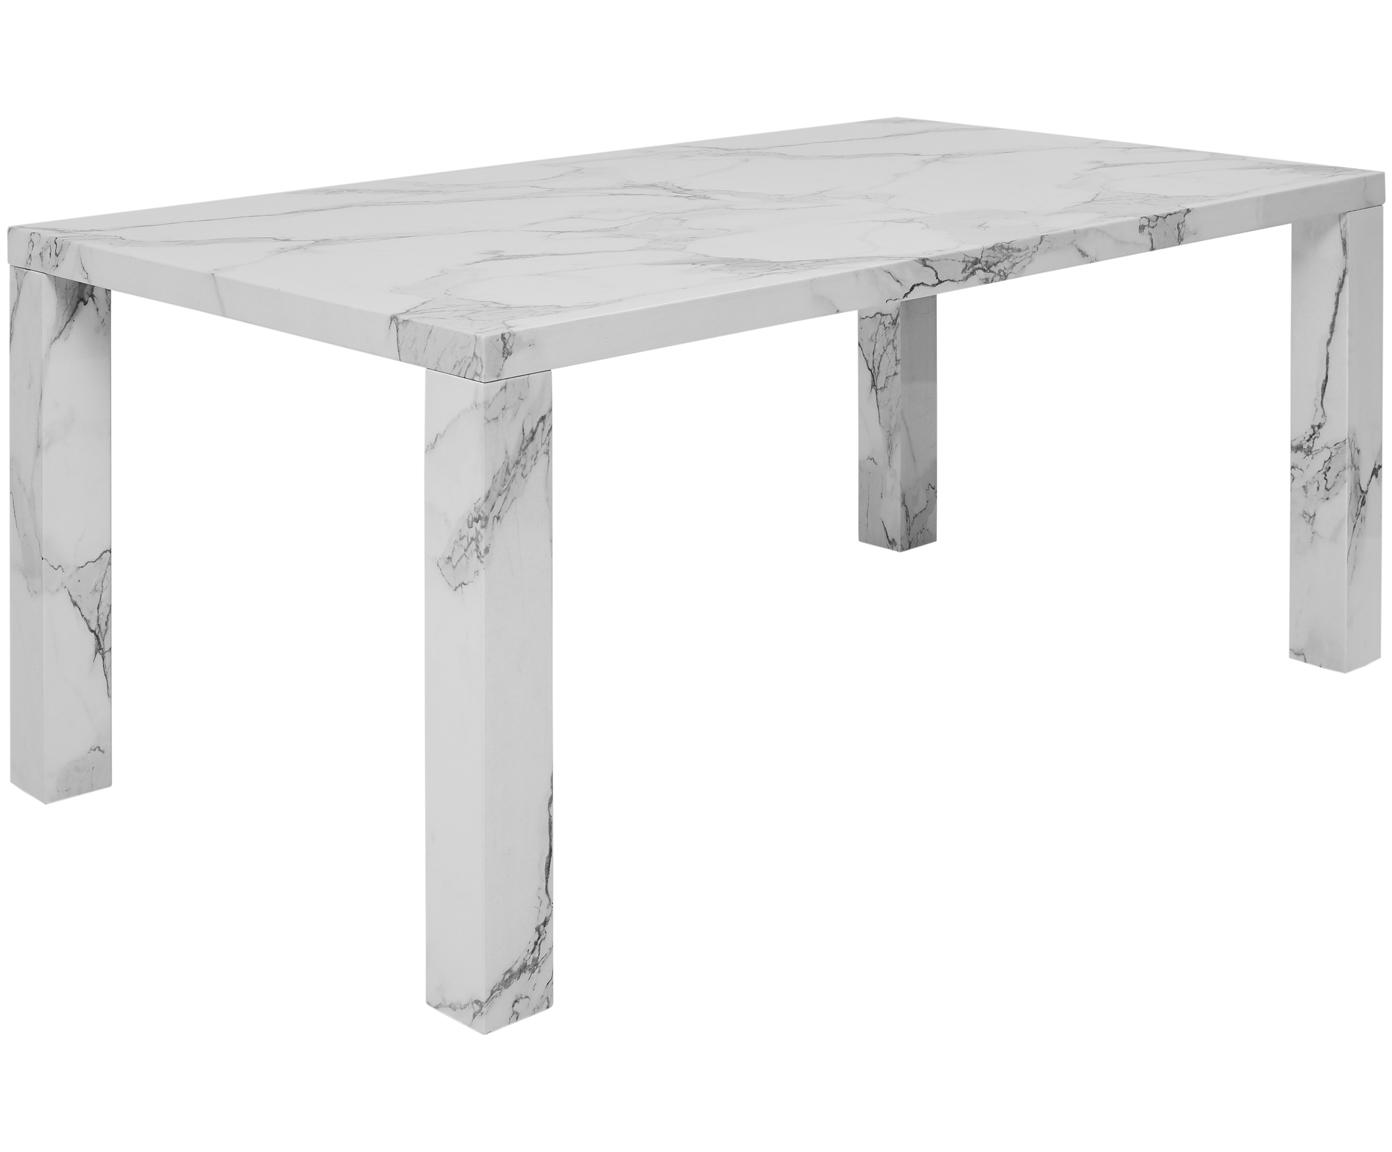 Eettafel Carl in marmerlook, MDF bedekt met gelakt papier in marmerlook, Wit gemarmerd, glanzend, 180 x 90 cm